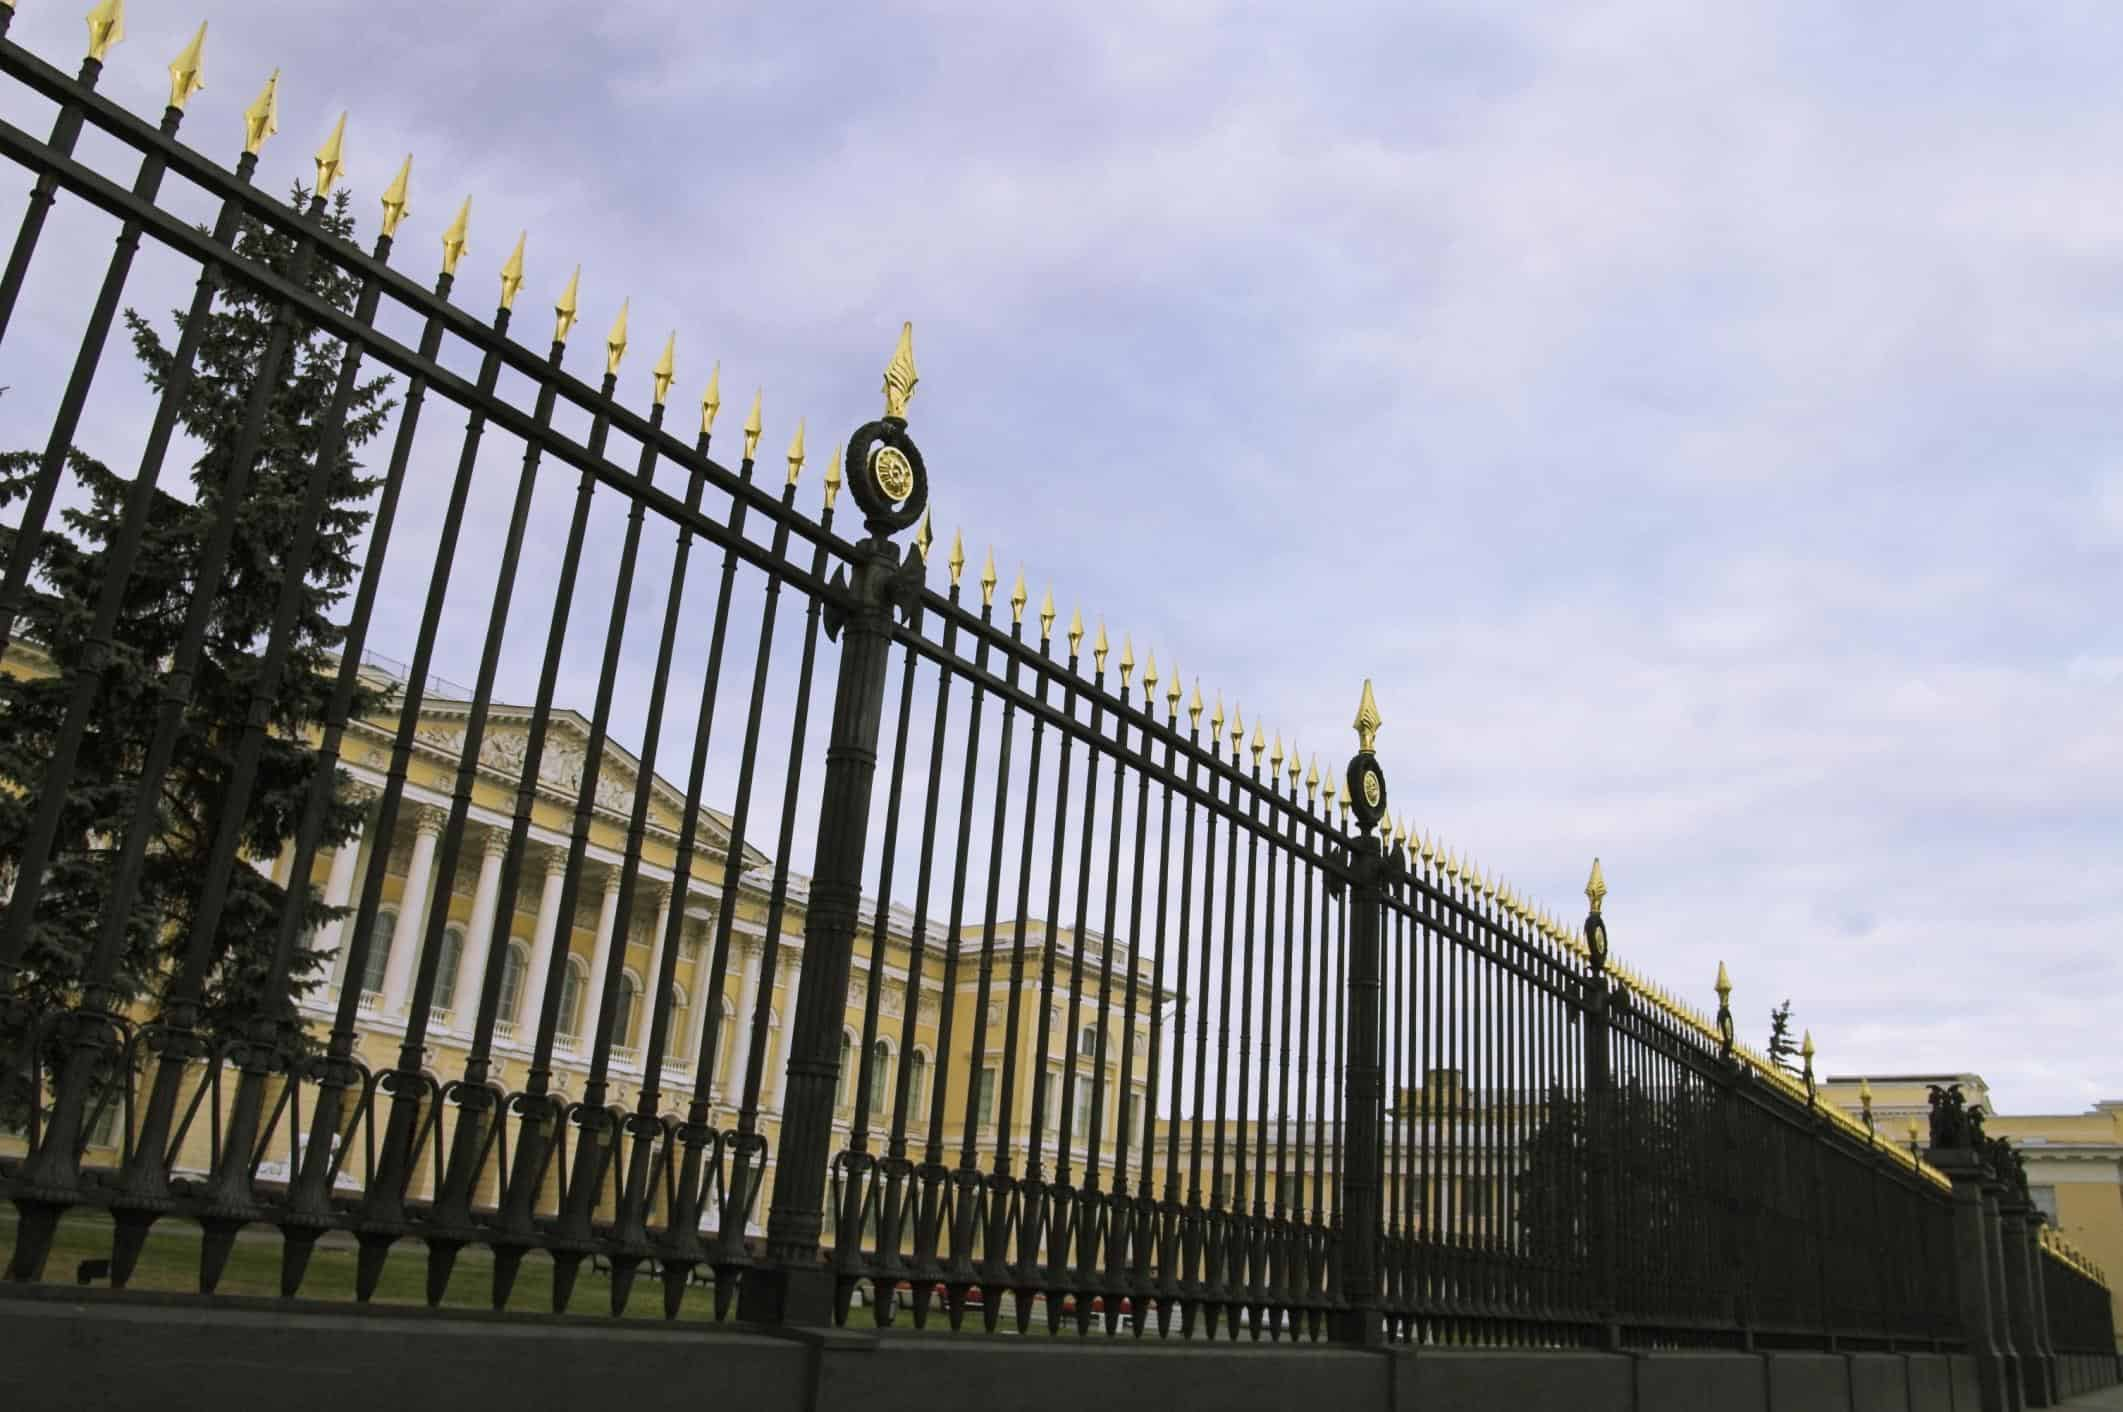 San Bernardino Fences - Aluminum and Iron Fence